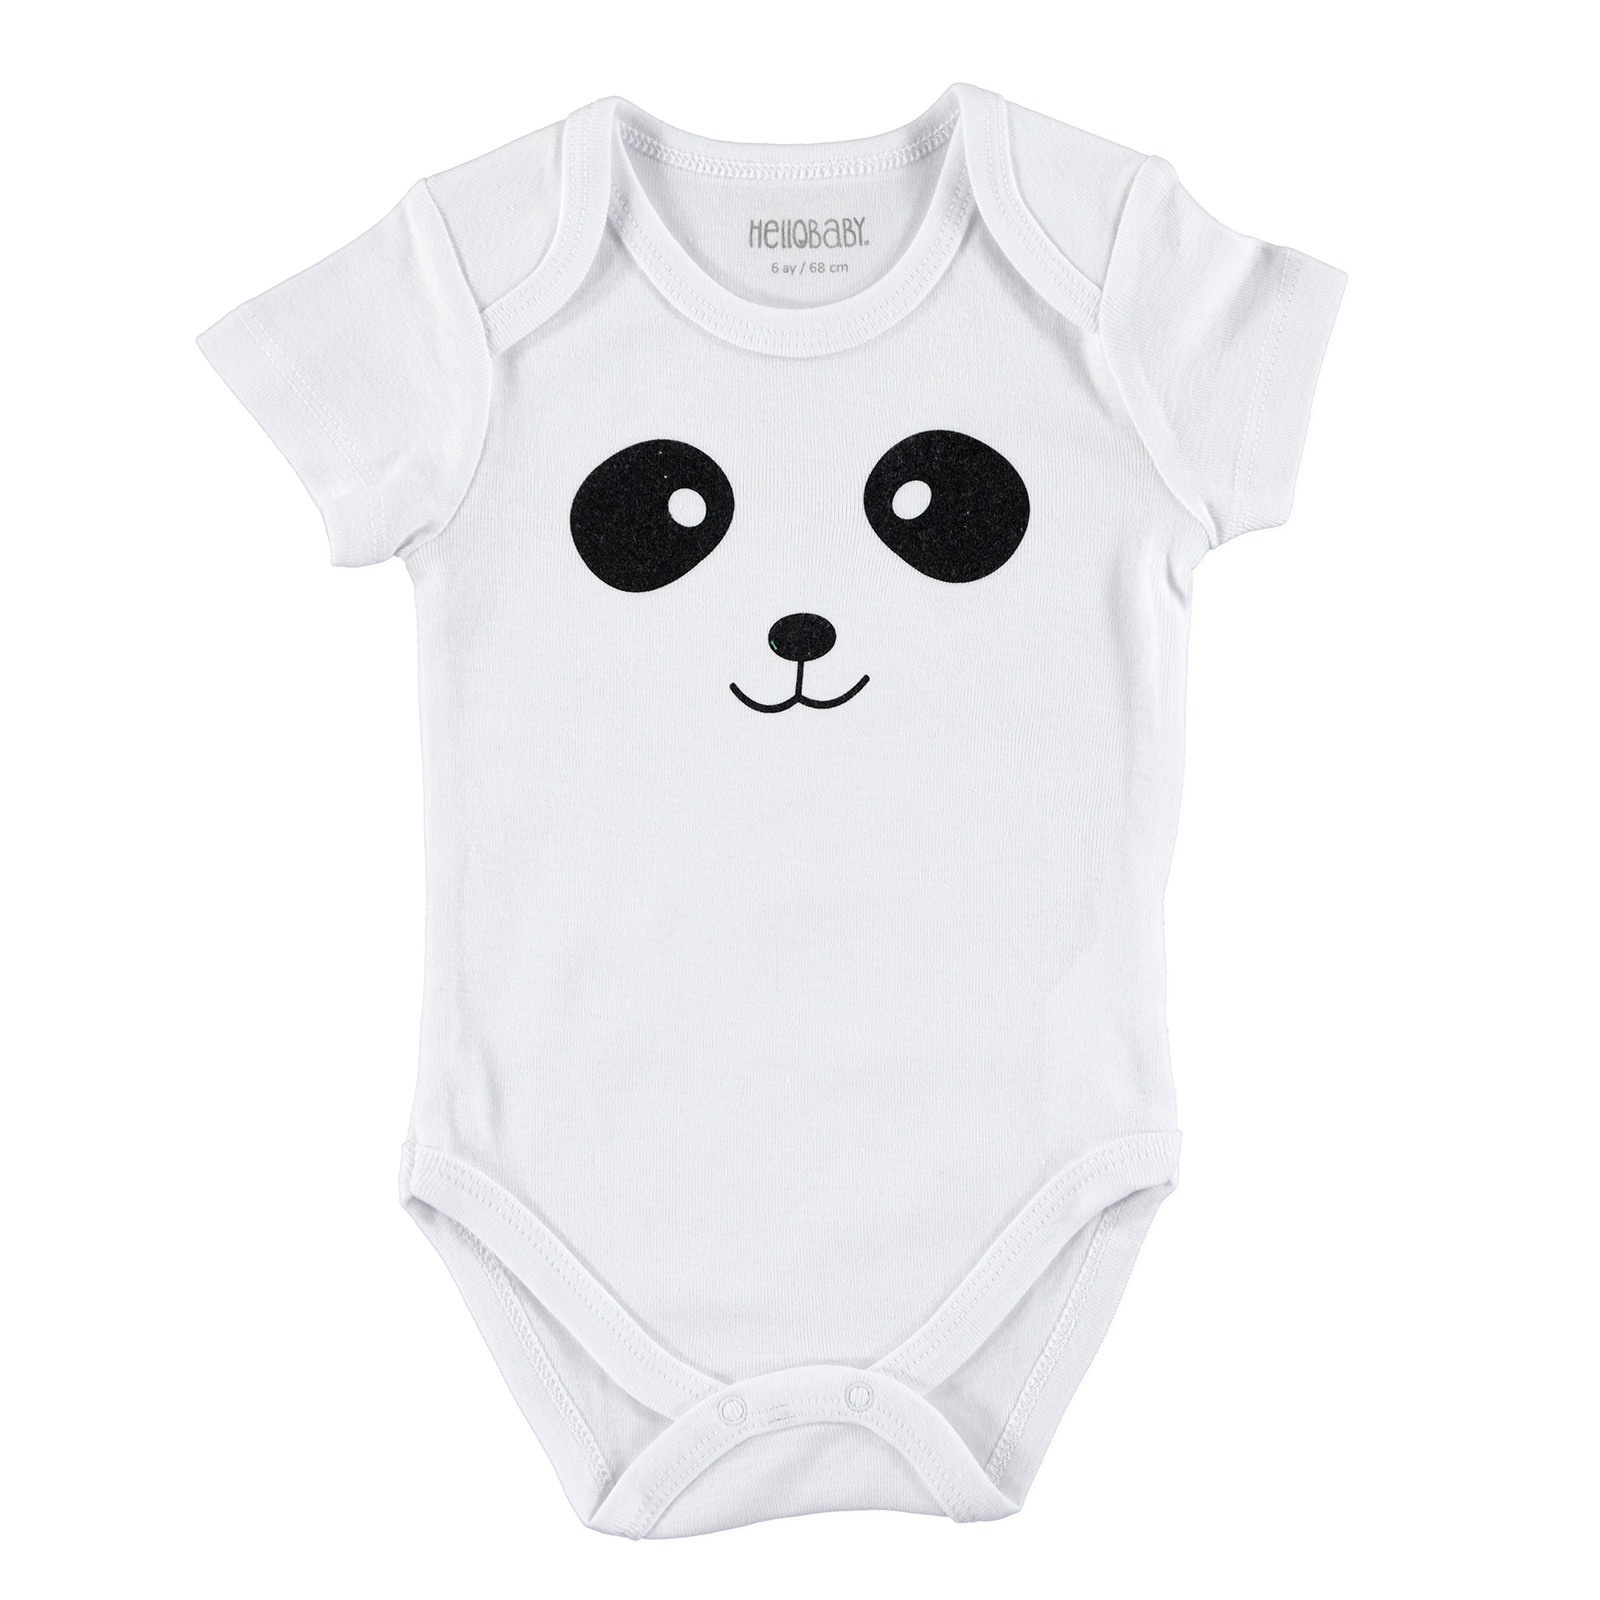 Ebebek HelloBaby Little Animals Face Printed Baby Short Sleeve Bodysuit